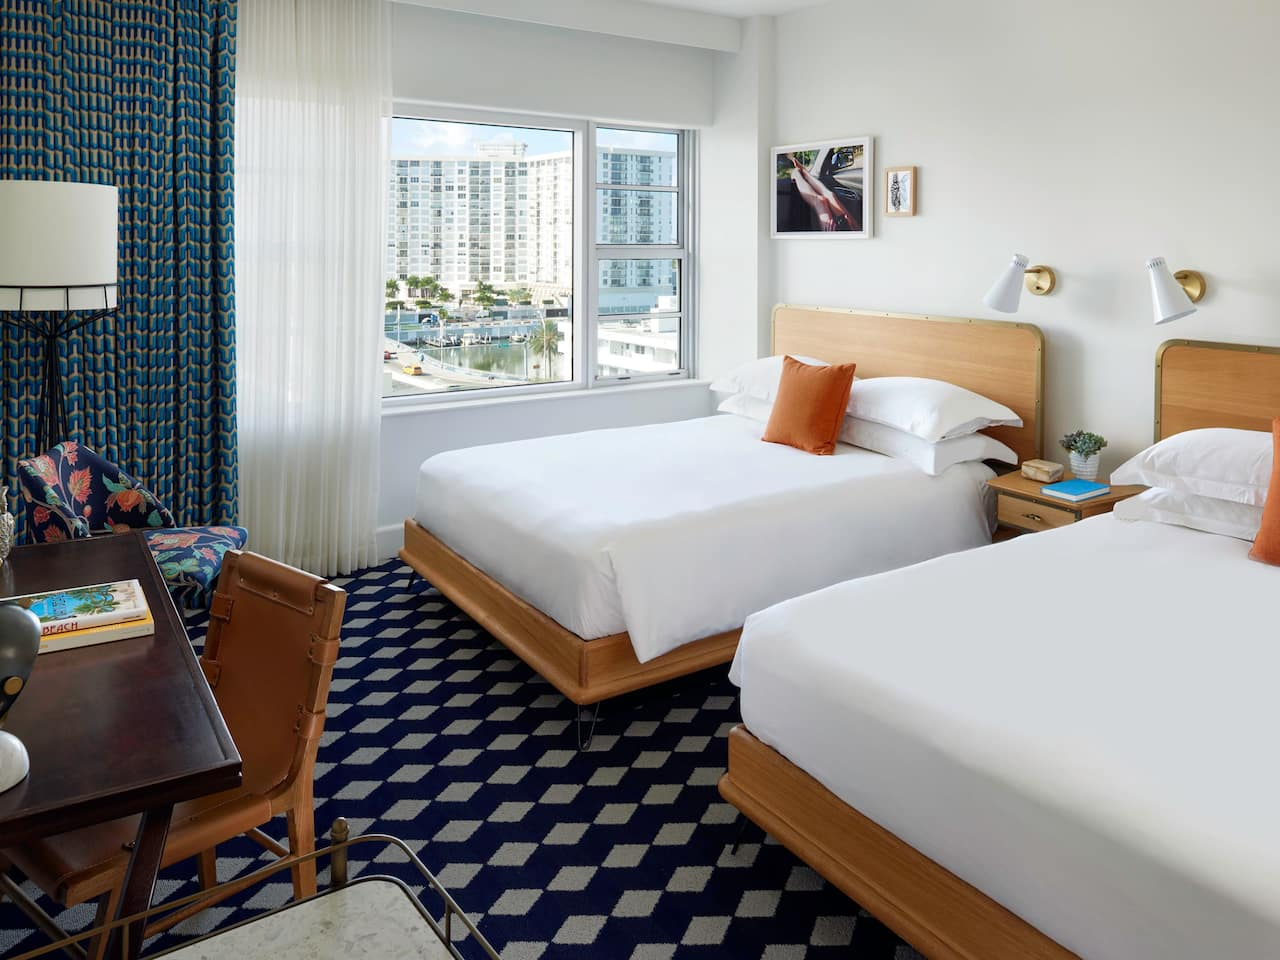 Miami Beach Hotel Room with Double Queen Beds at The Confidante Miami Beach